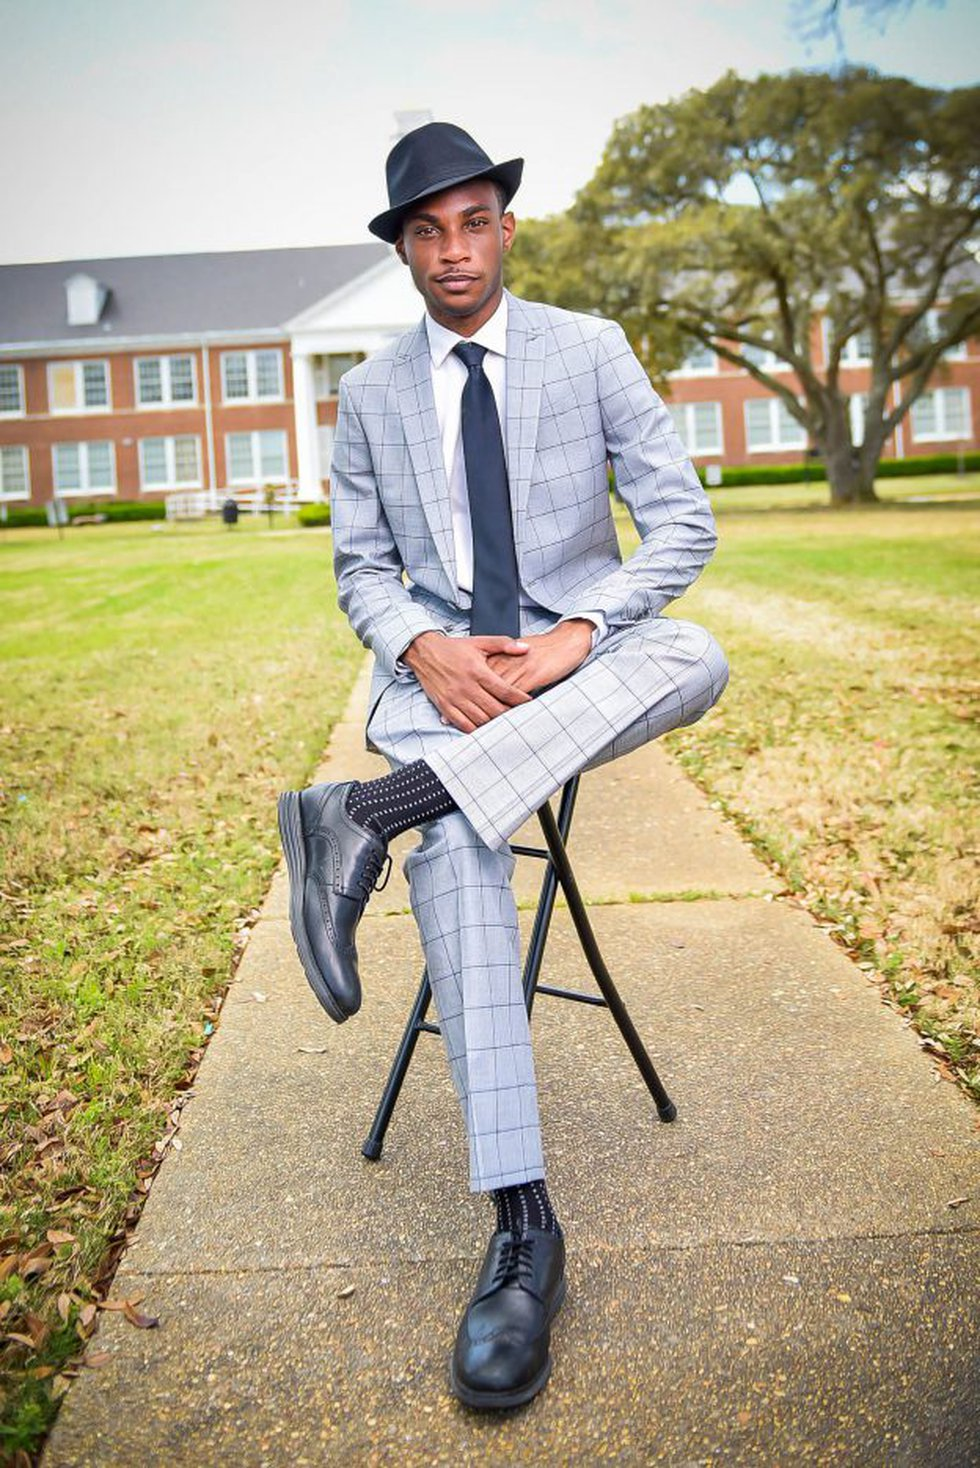 Stevie Wilson and his two brothers are set to graduate from Grambling State University.